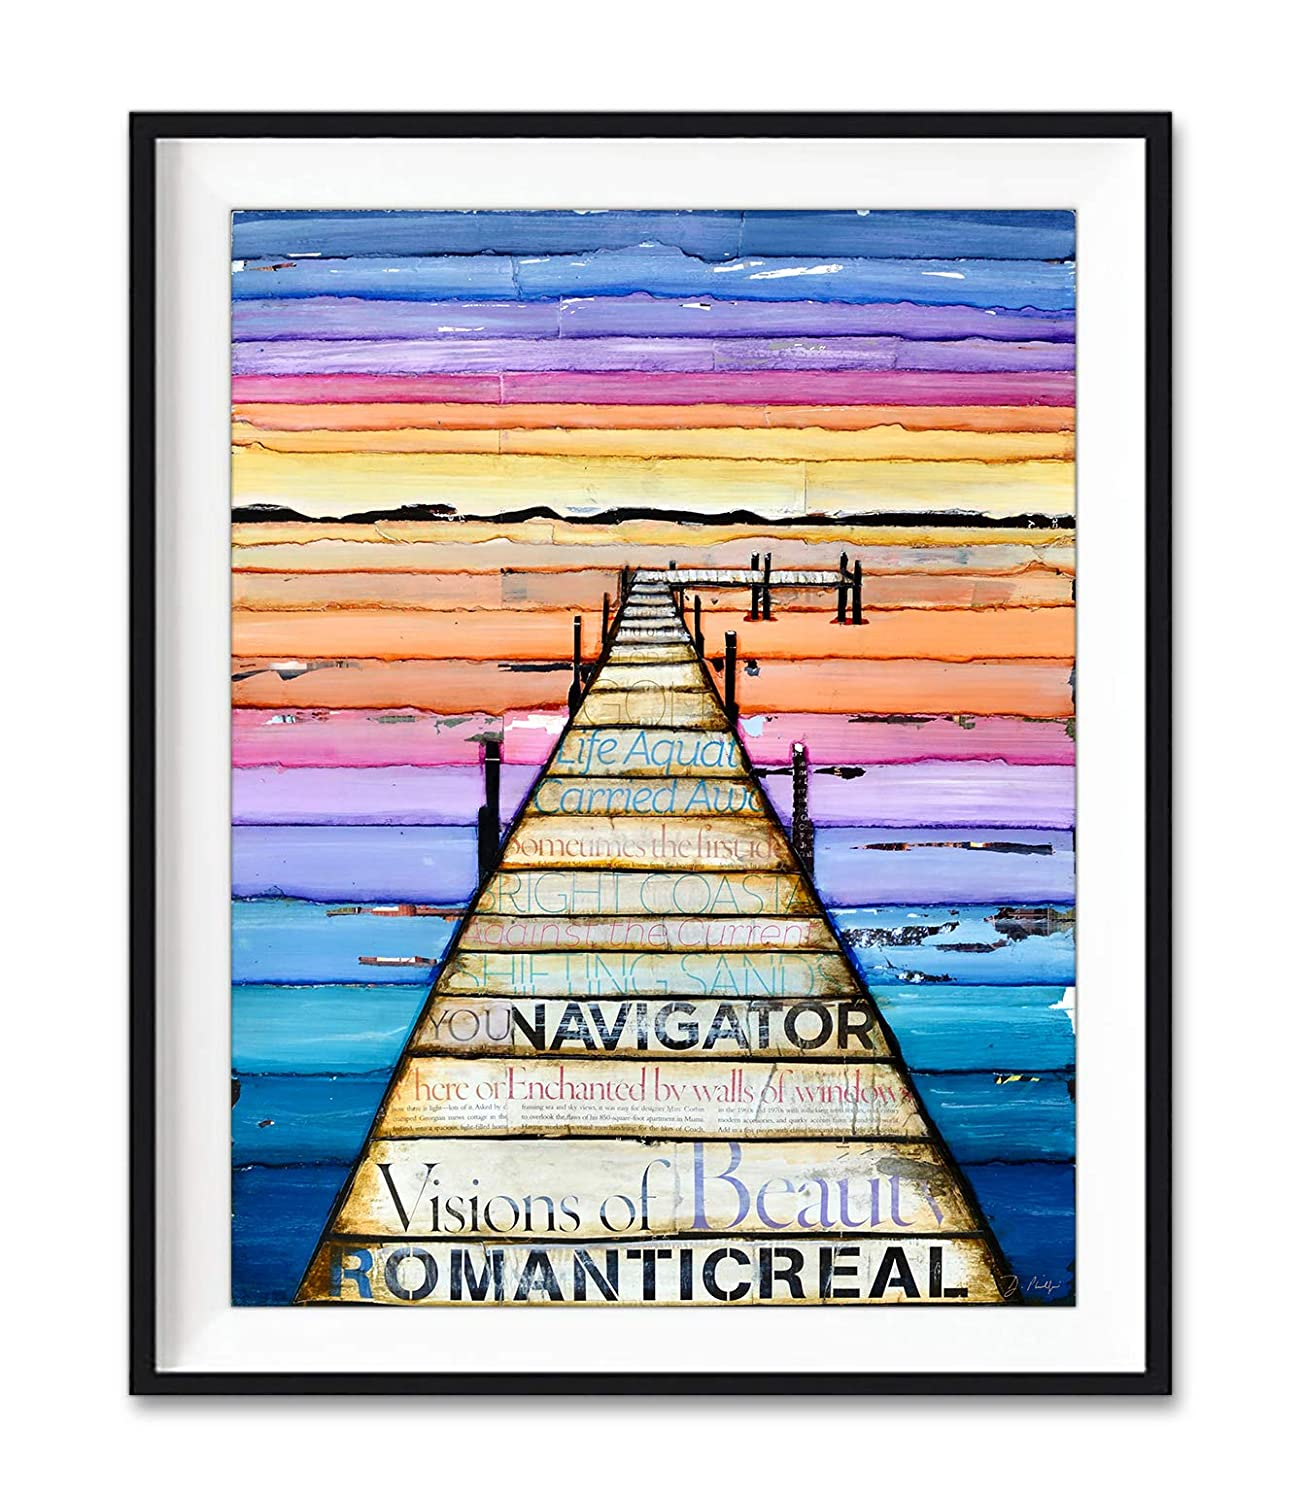 Pier Pressure - Danny Phillips Art Print, Unframed, Dock on Lake at Sunset Mixed Media Collage Painting, Colorful Vibrant Artwork Wall Decor, Fine Art Poster, All Sizes